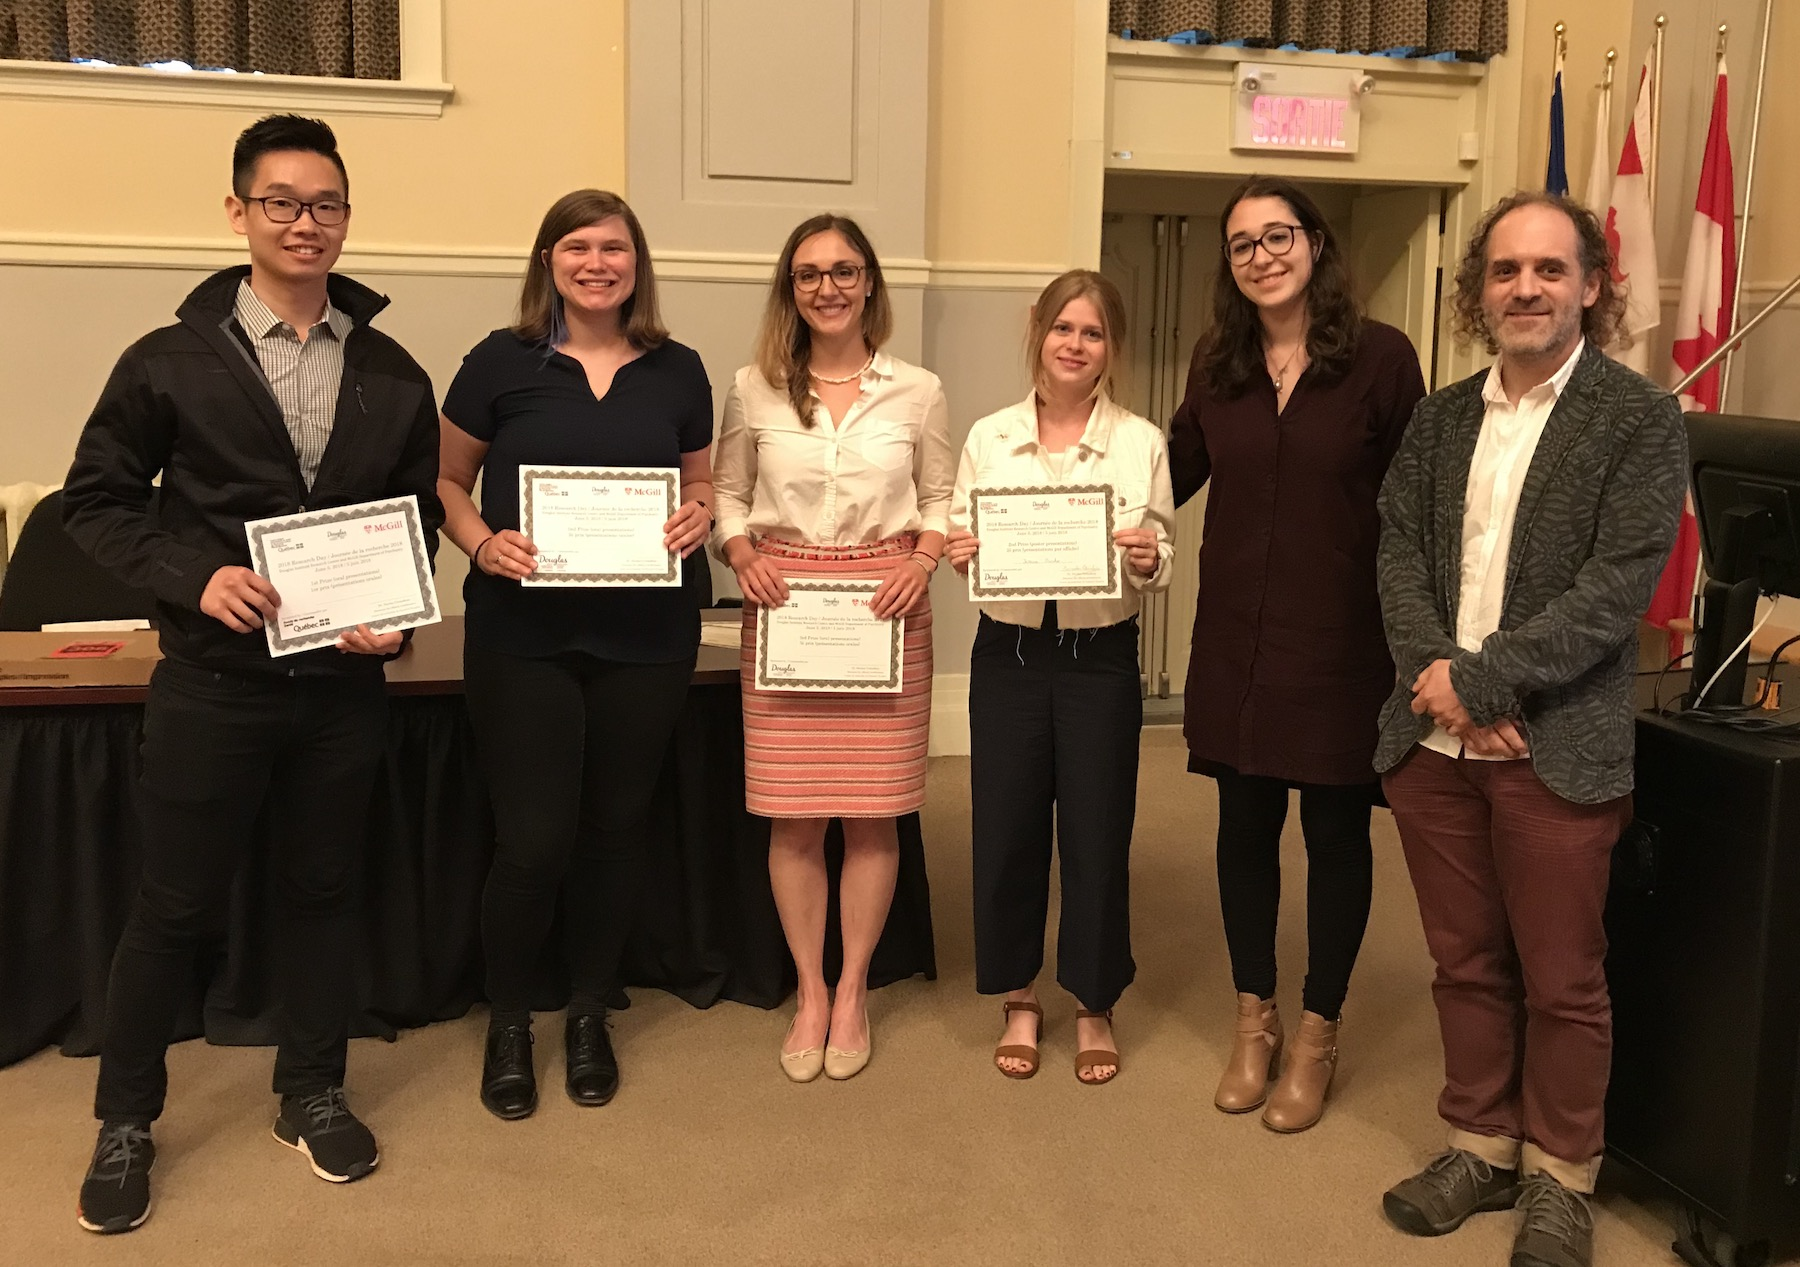 Douglas Research Day Award Winners